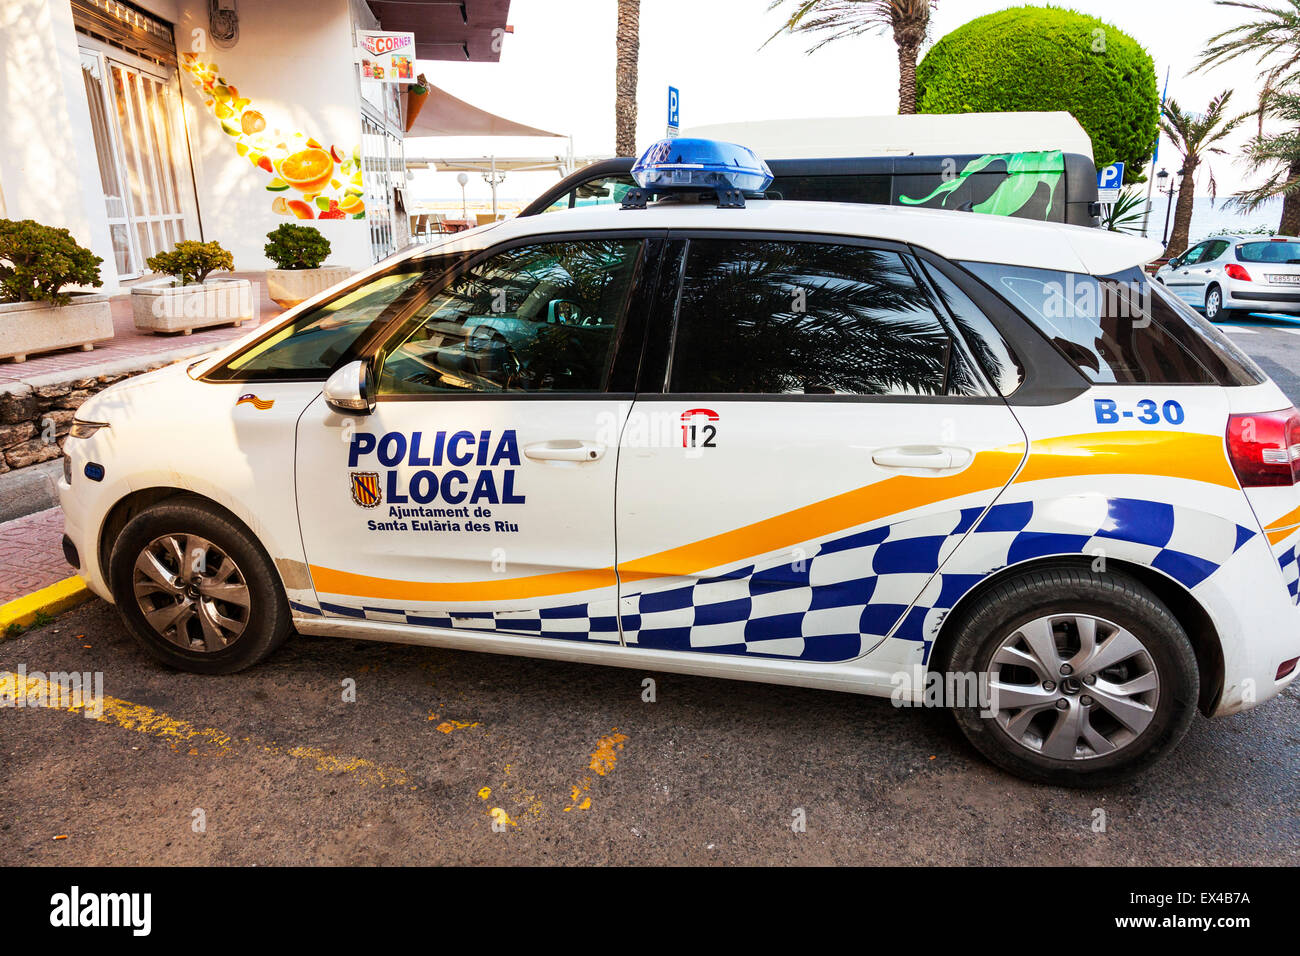 Spanish Police Car Spain Policia Local Vehicle Parked Waiting Stock